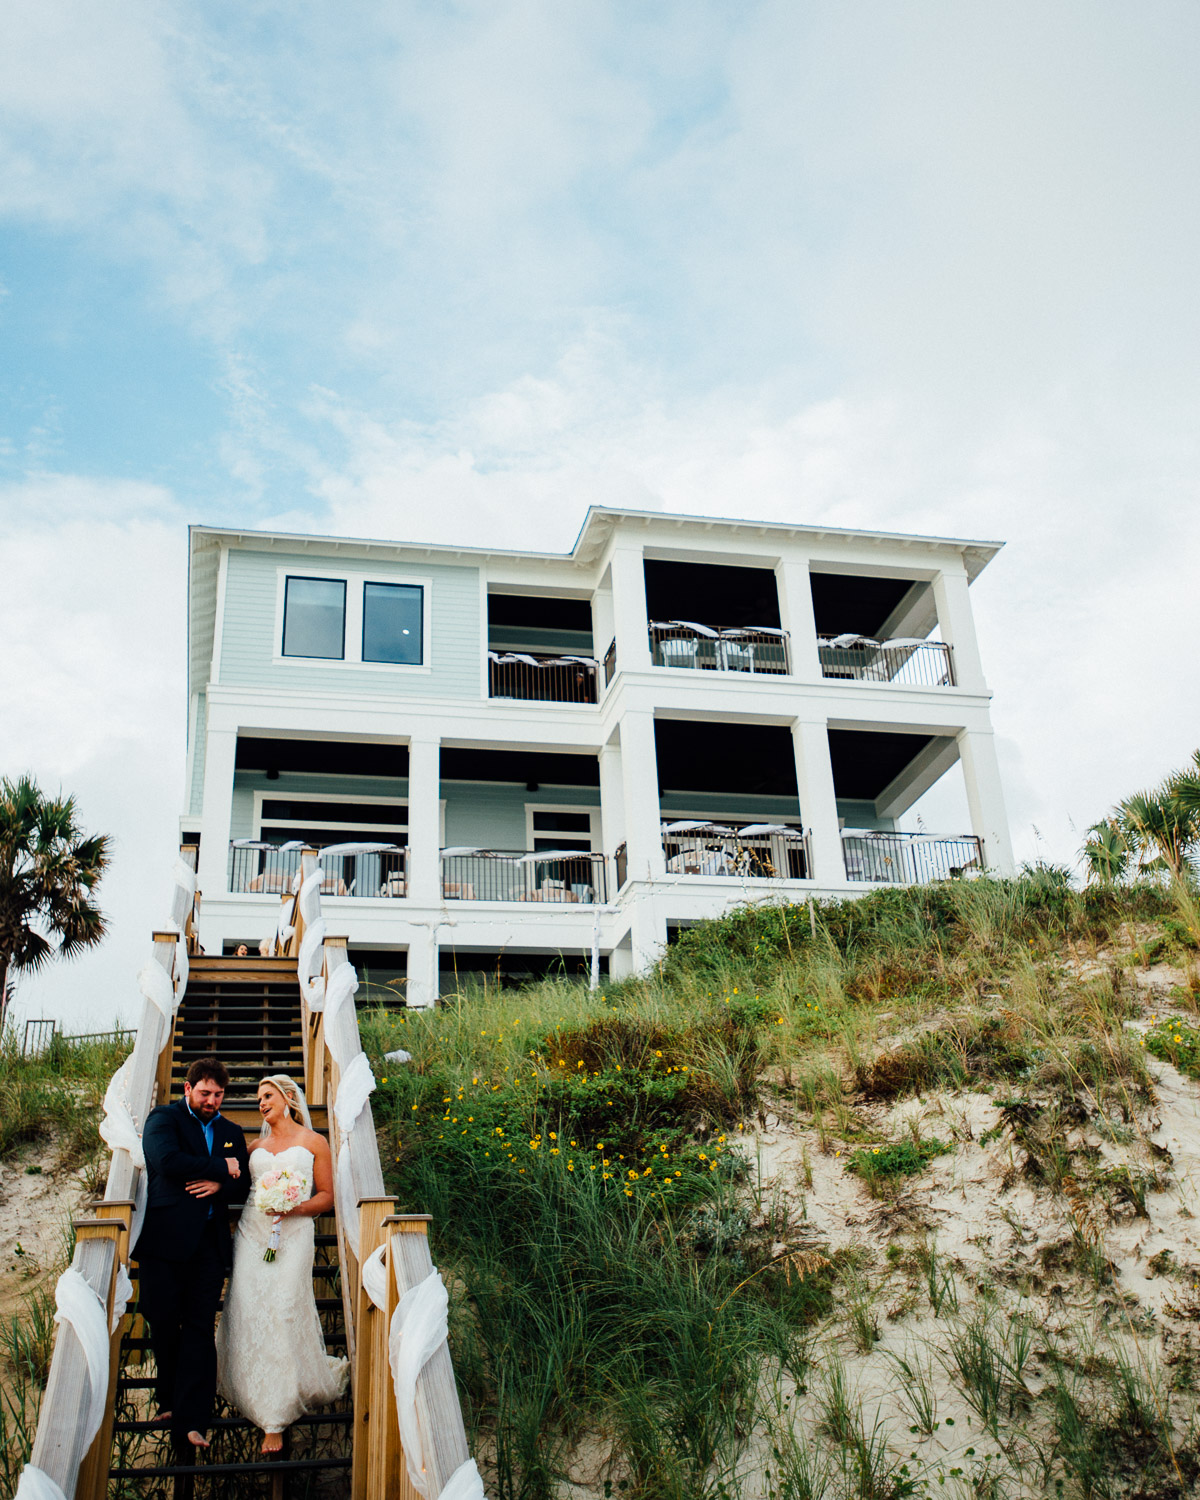 brother-walking-bride-down-aisle Destin Beach House | Destination Wedding | Kasey and Rocky